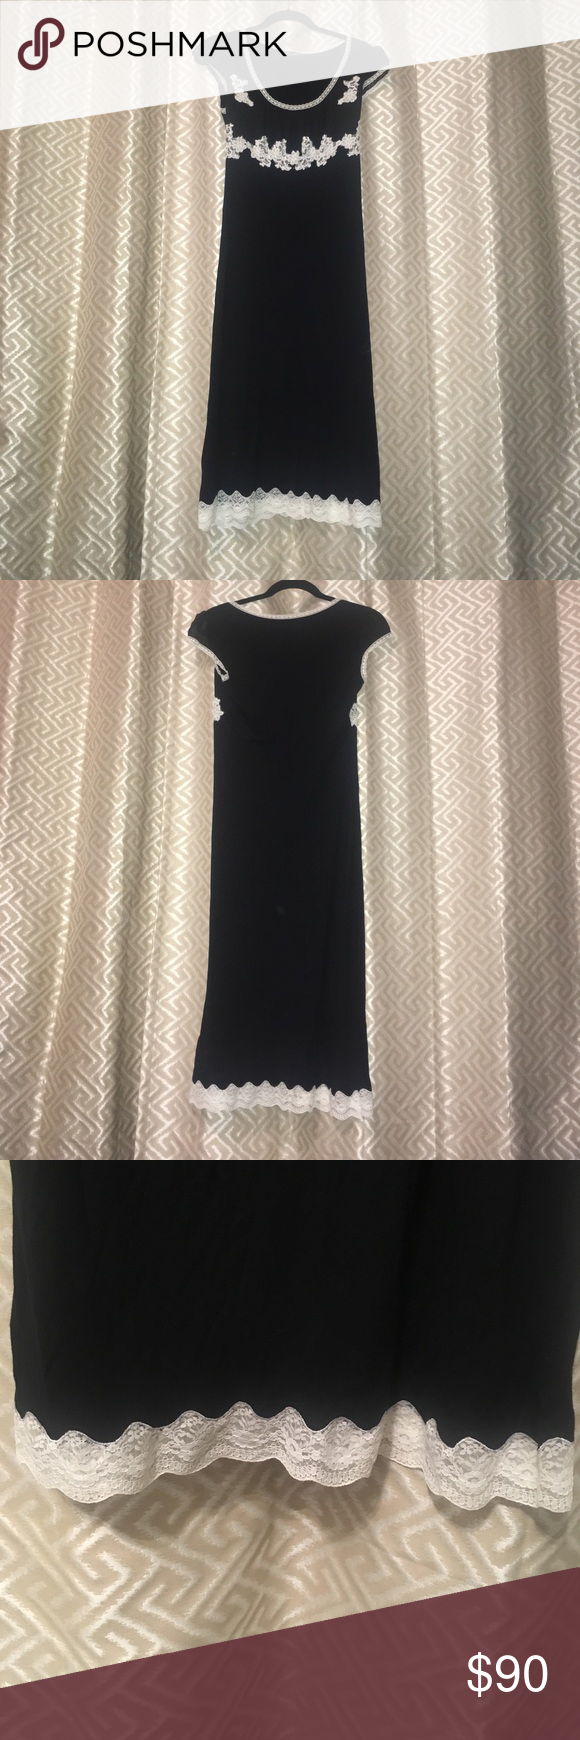 Betsey Johnson black dress with lace appliqués 42 inches long Betsey Johnson dress from the 90s. So soft with lace appliqués and sheer sleeve help create the  perfect piece for a romantic night! Betsey Johnson Dresses Midi